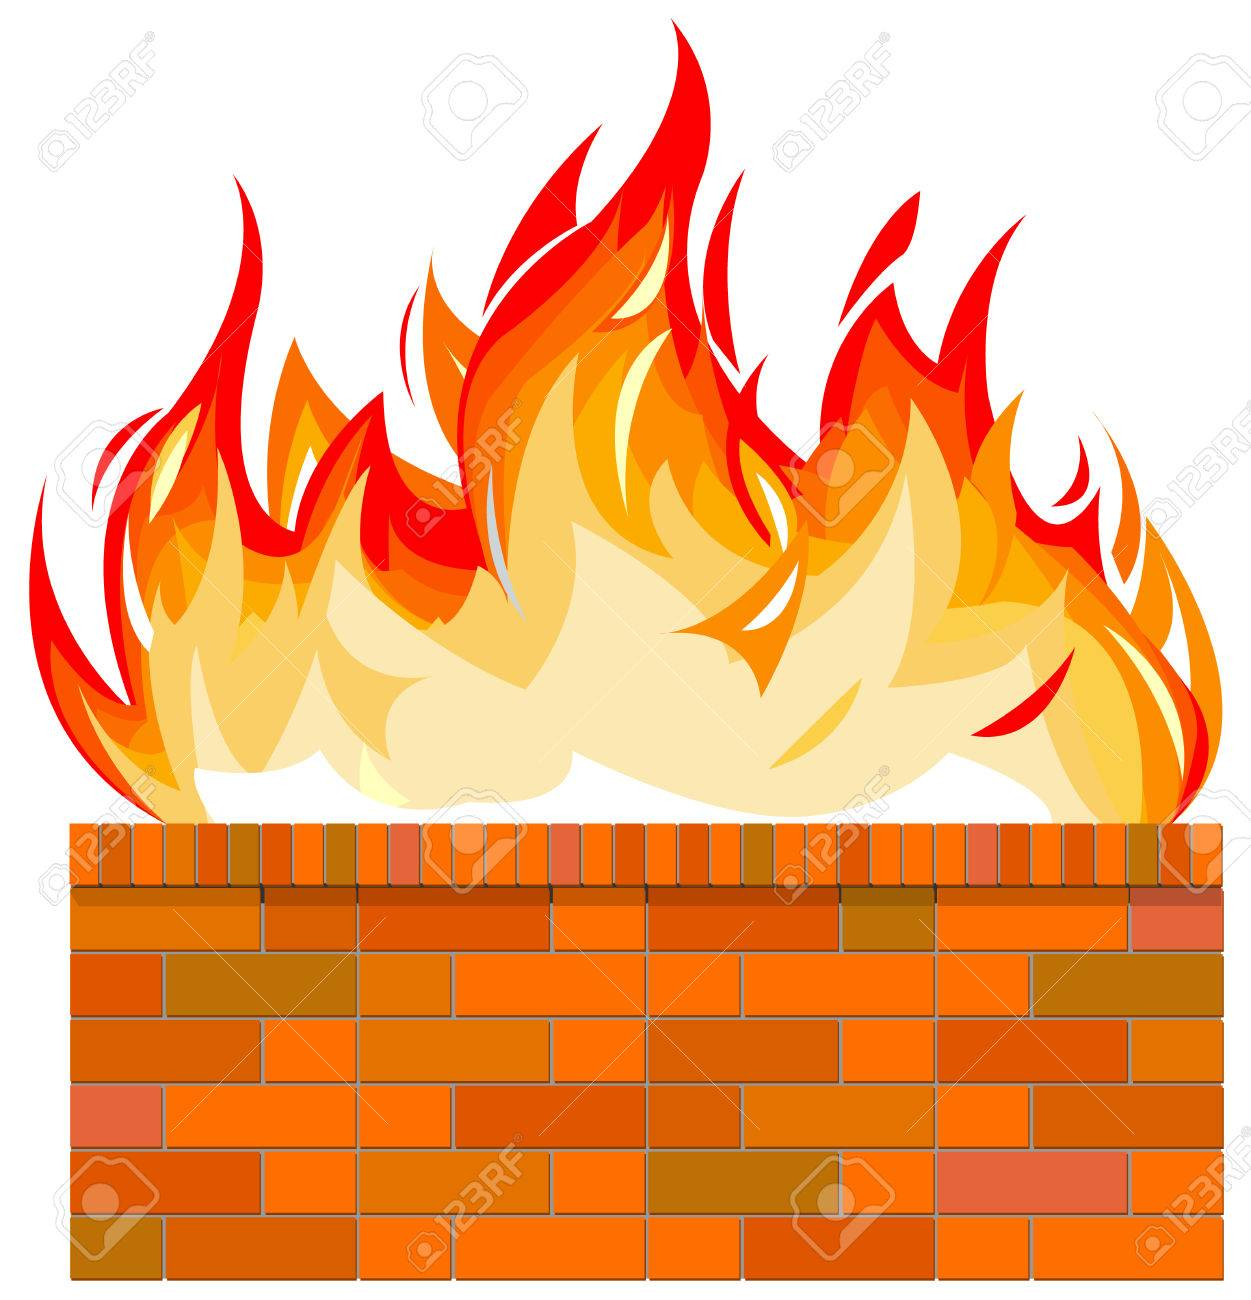 Brick Wall On Fire Royalty Free Cliparts, Vectors, And Stock ...